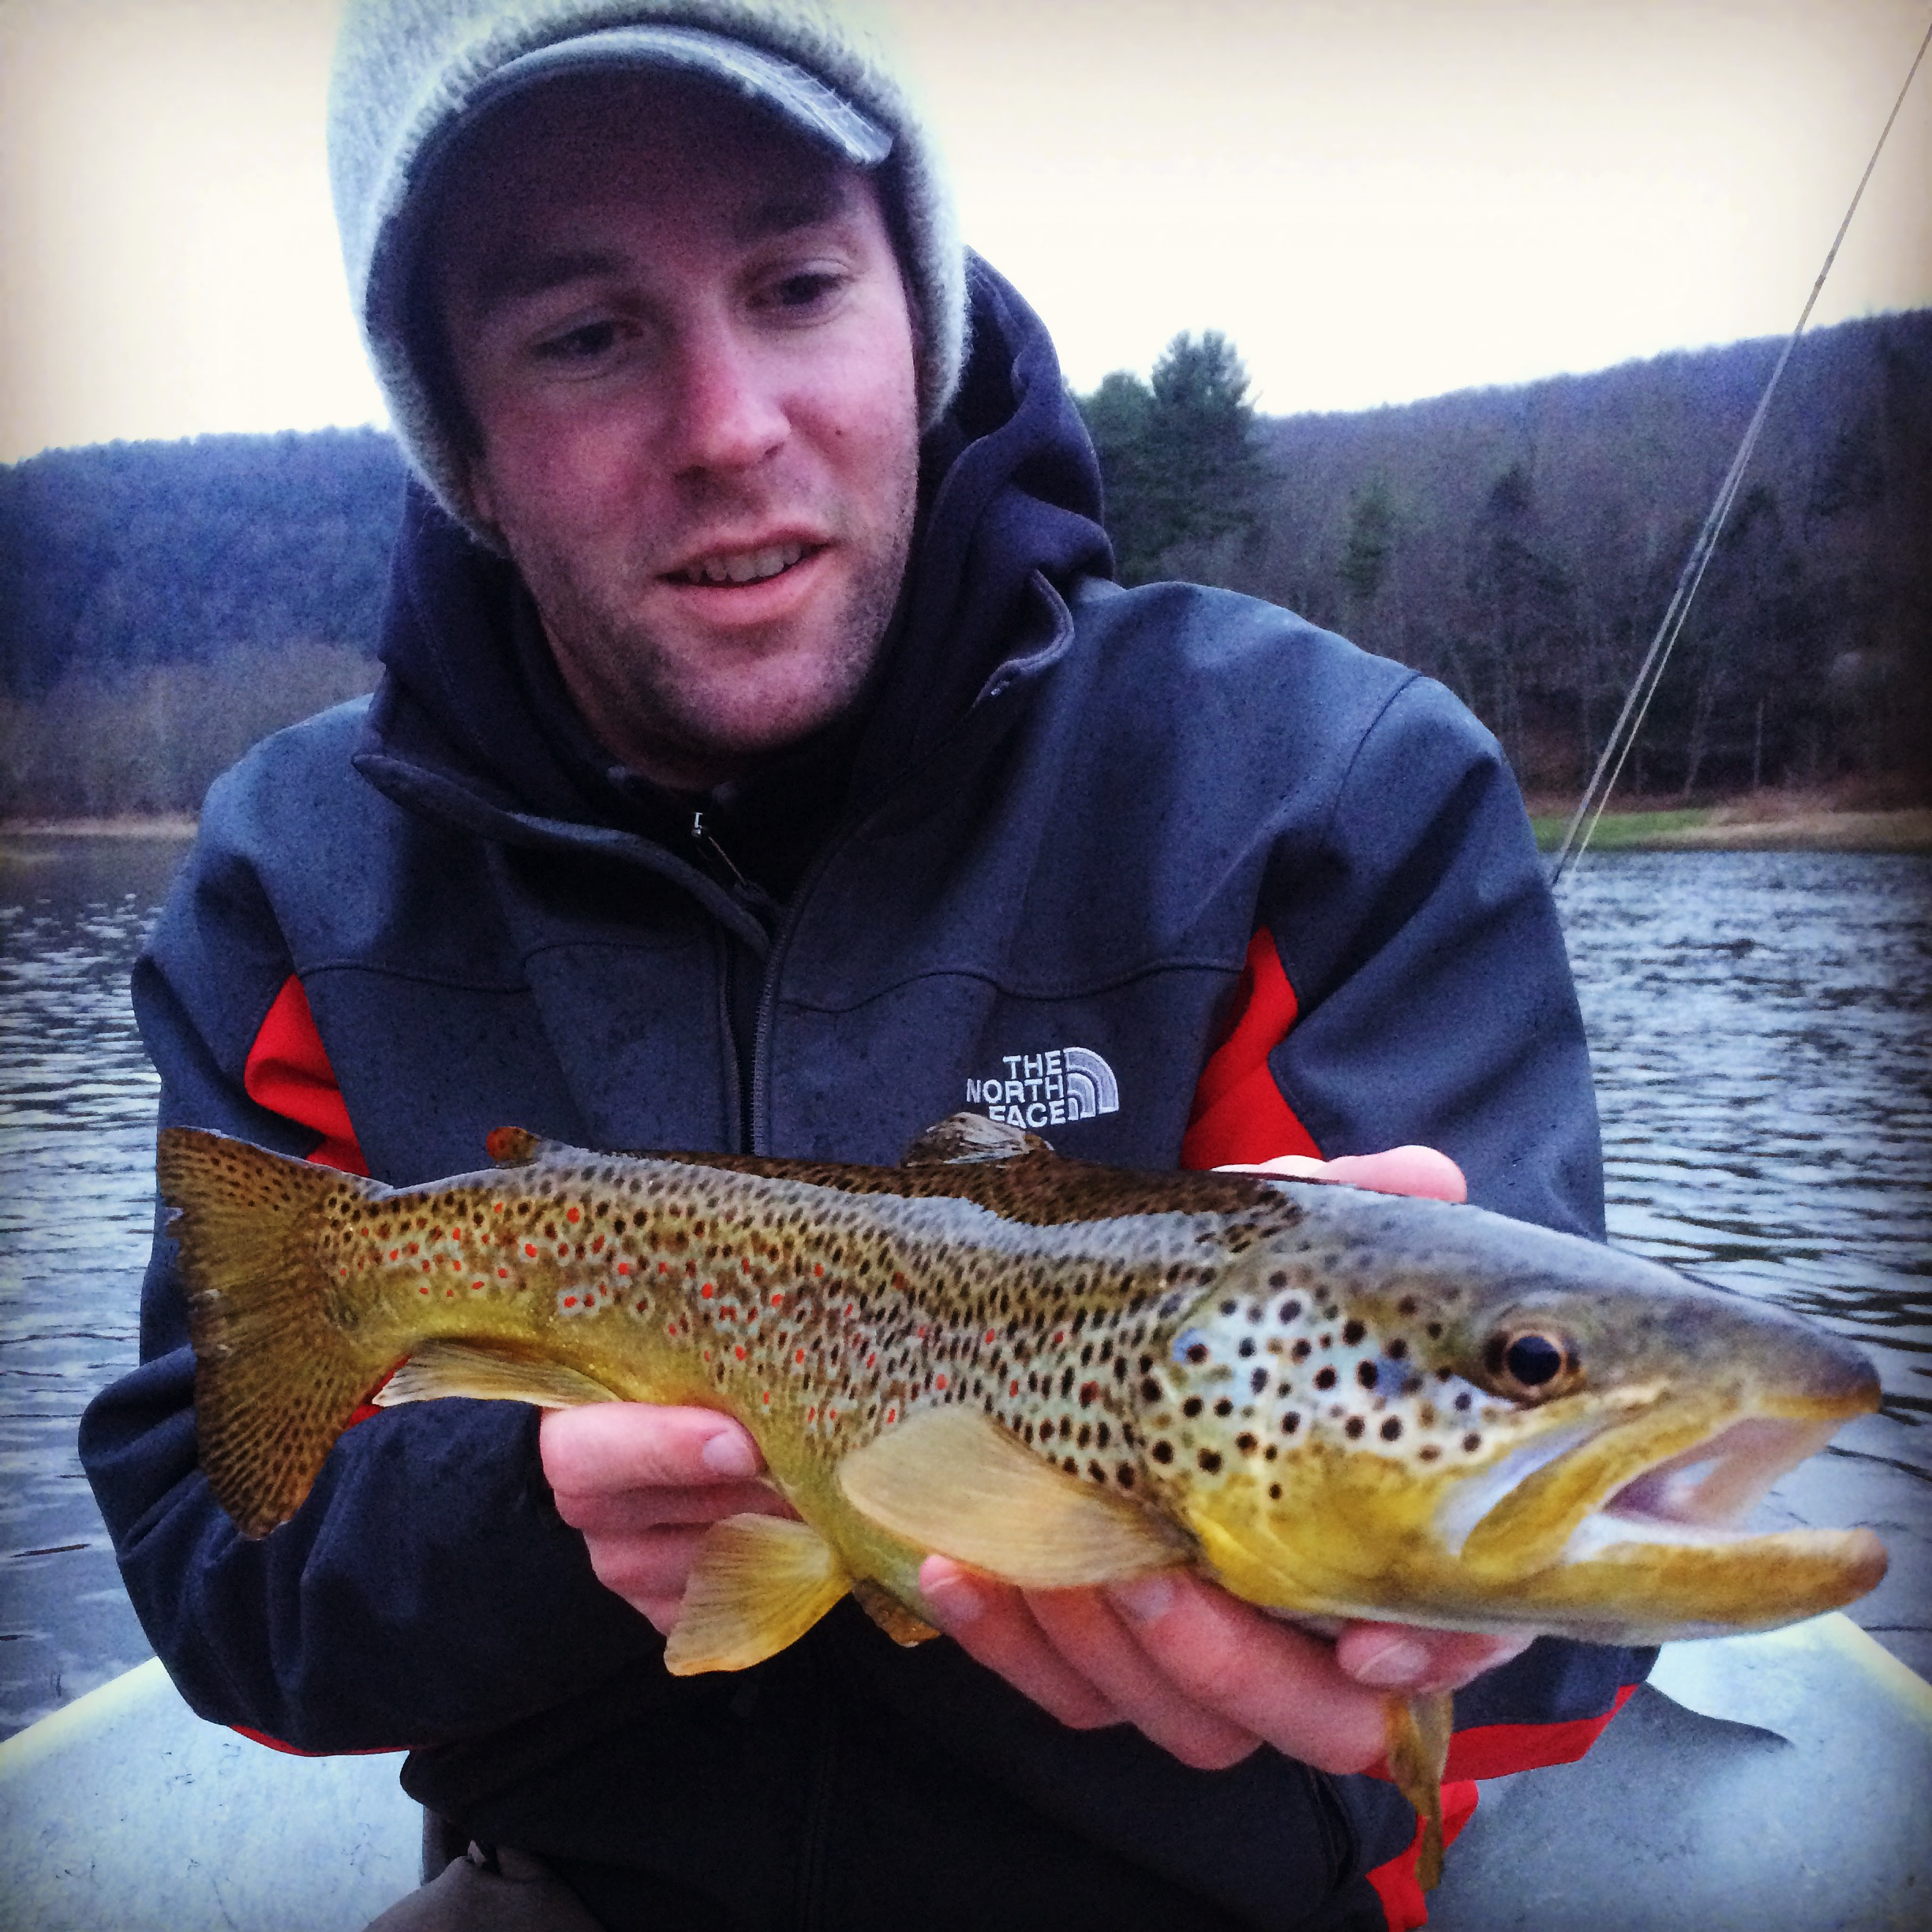 Kyle T. with a lovely Brown trout taken on his fly rod.